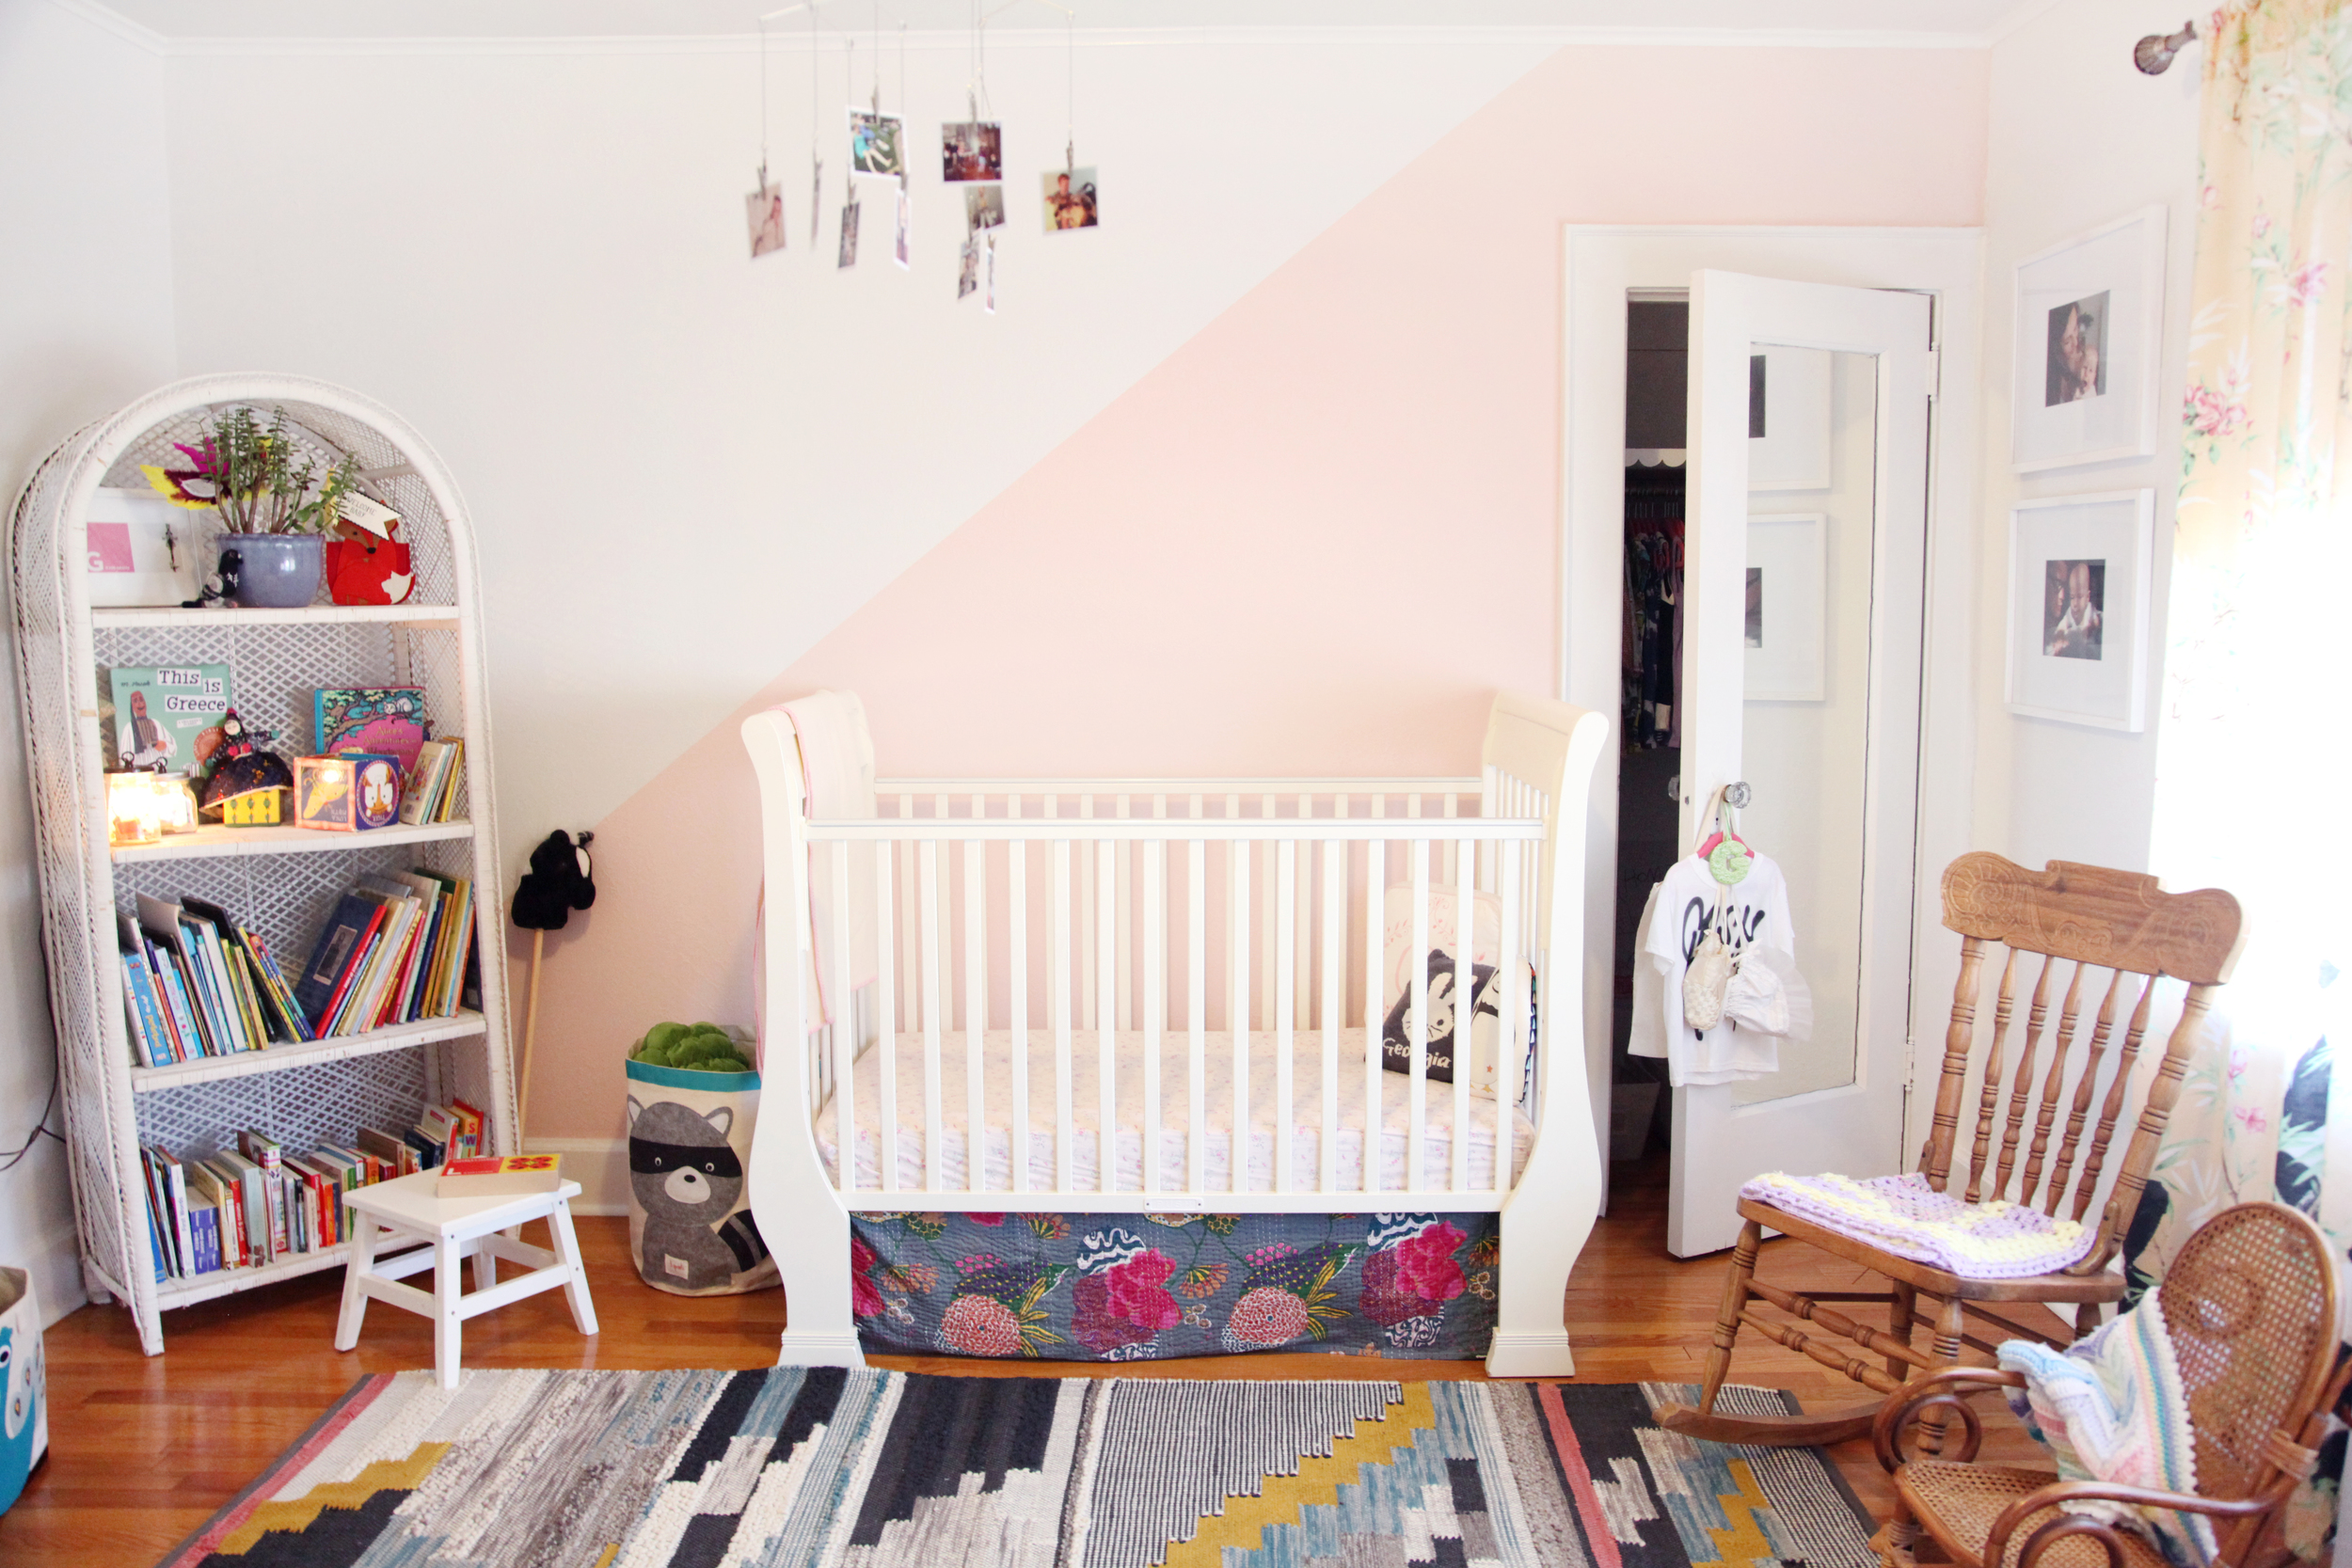 Wicker white bookshelf scored at a local church sale and a West Elm statement rug. Pale pink paint slices the wall.